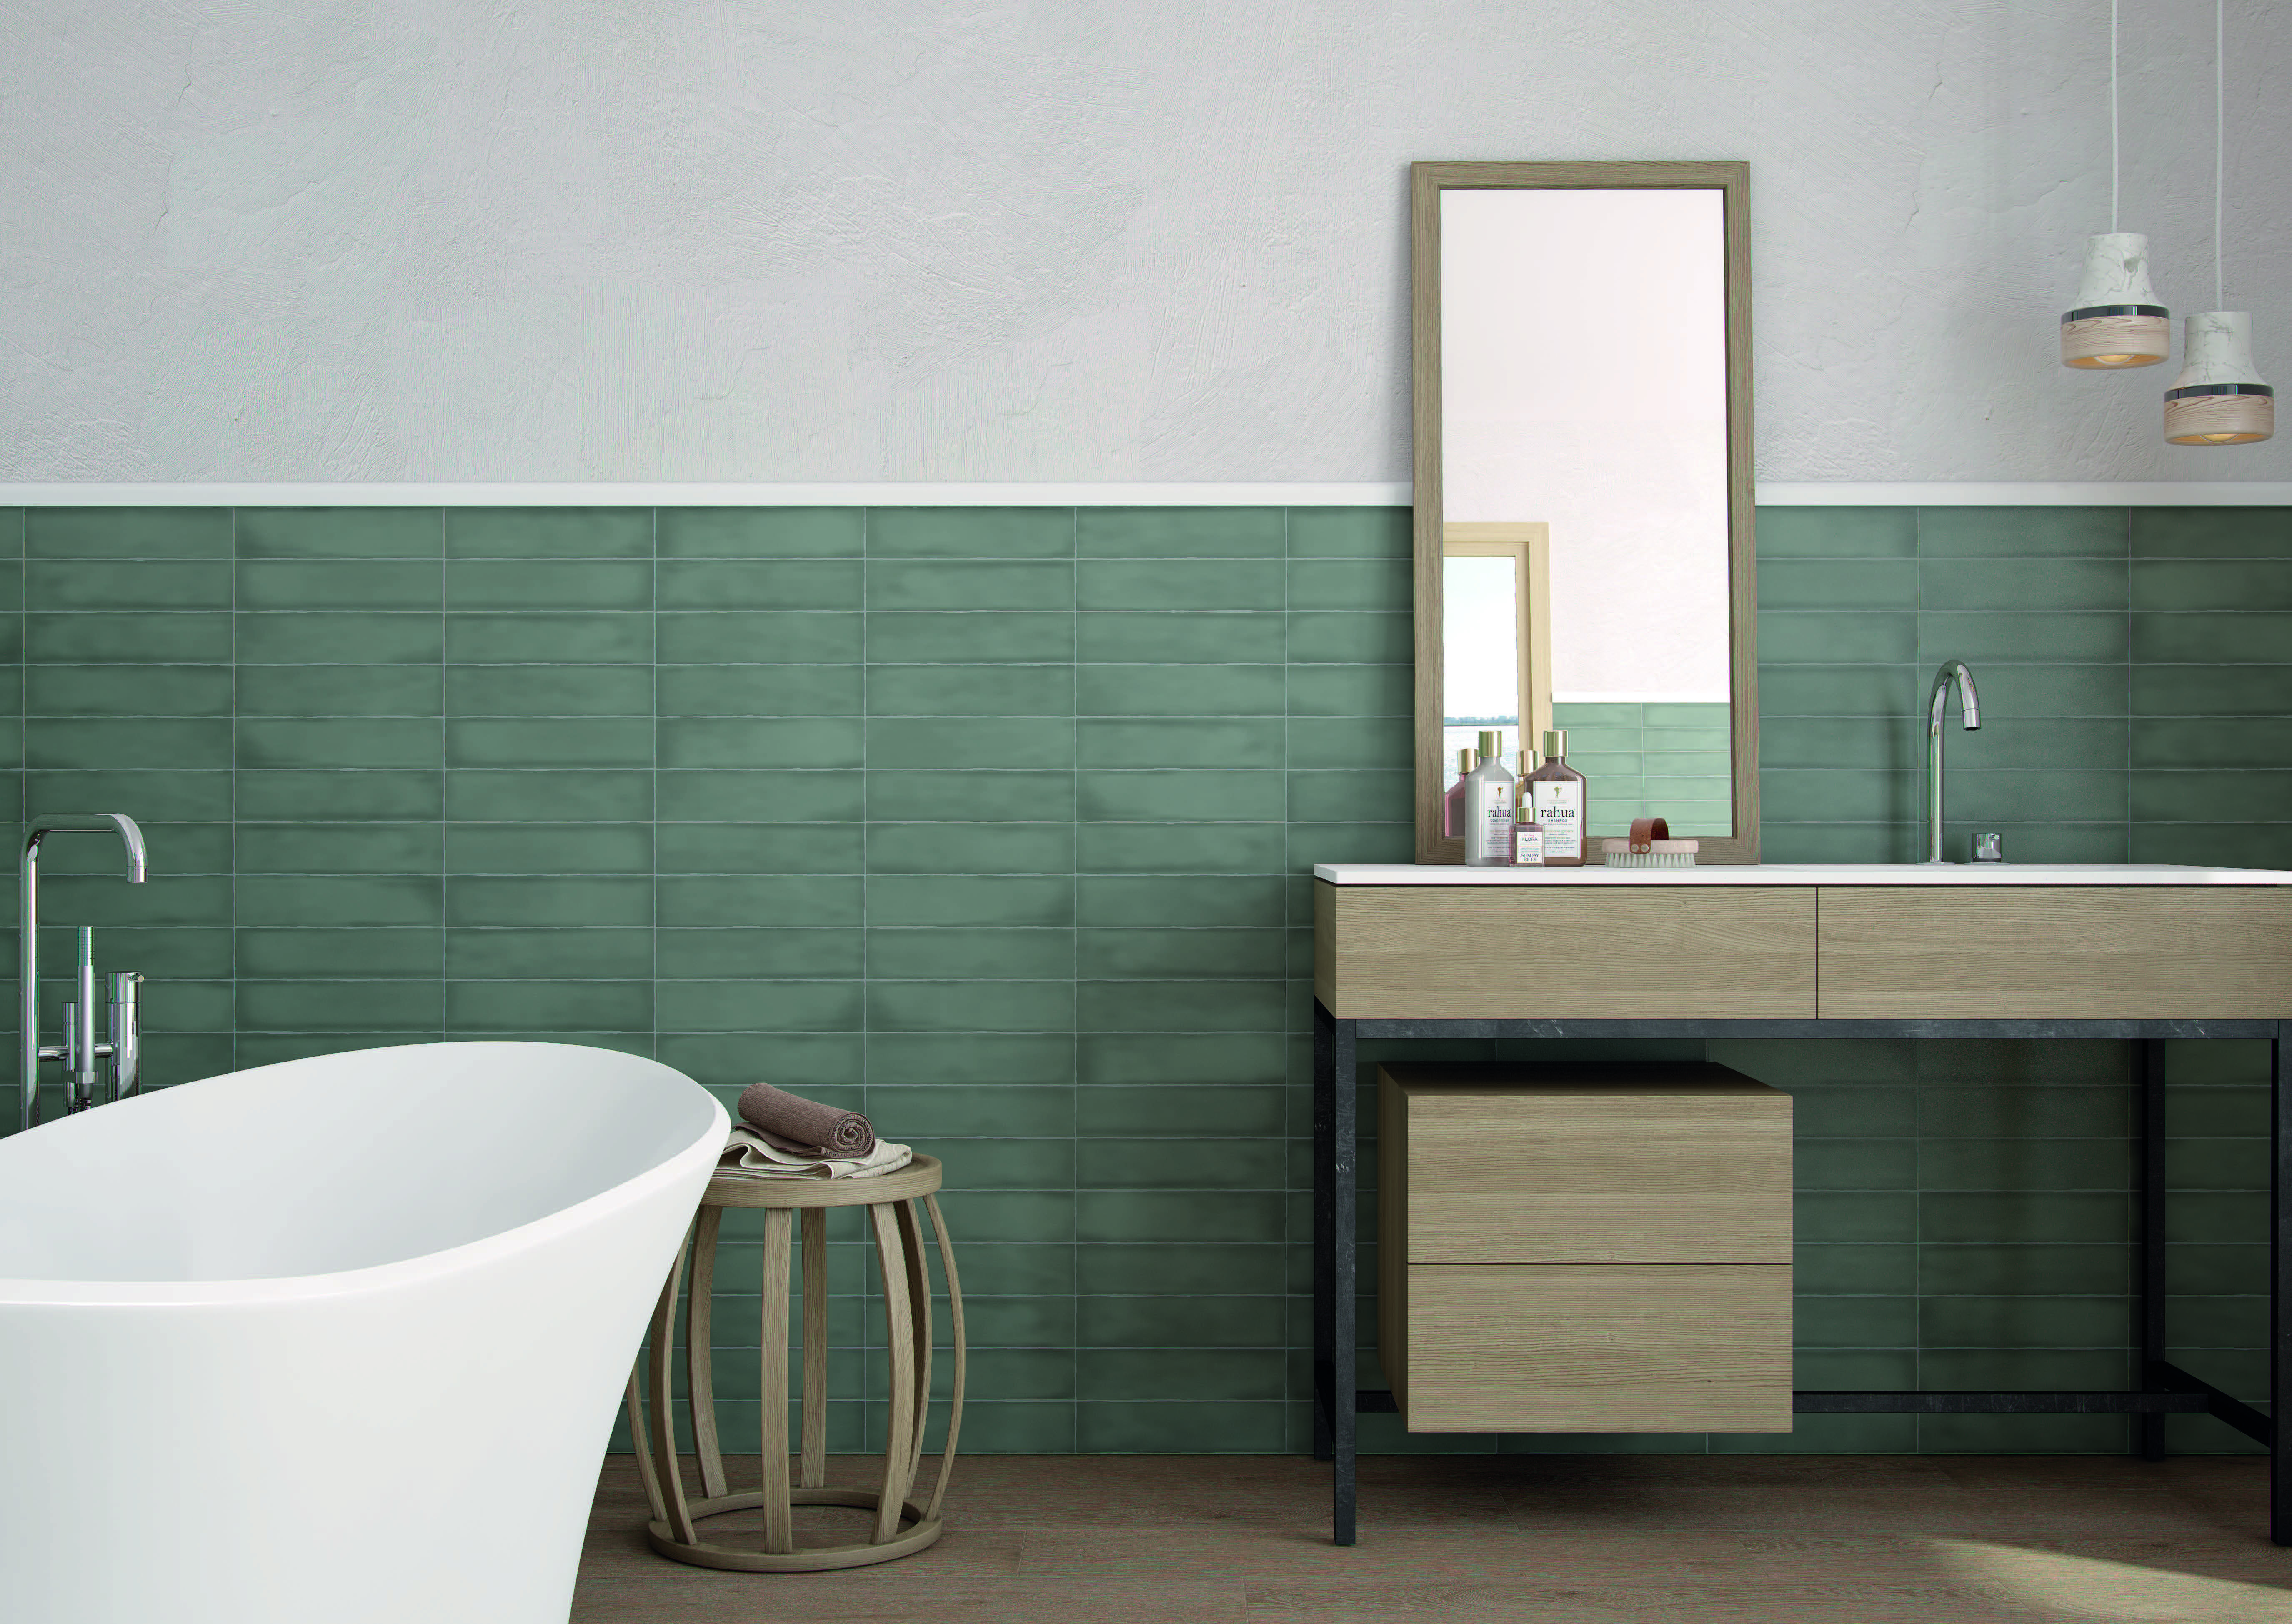 Welcome 2020 Bathroom Interior Design Wall And Floor Tiles Colonial